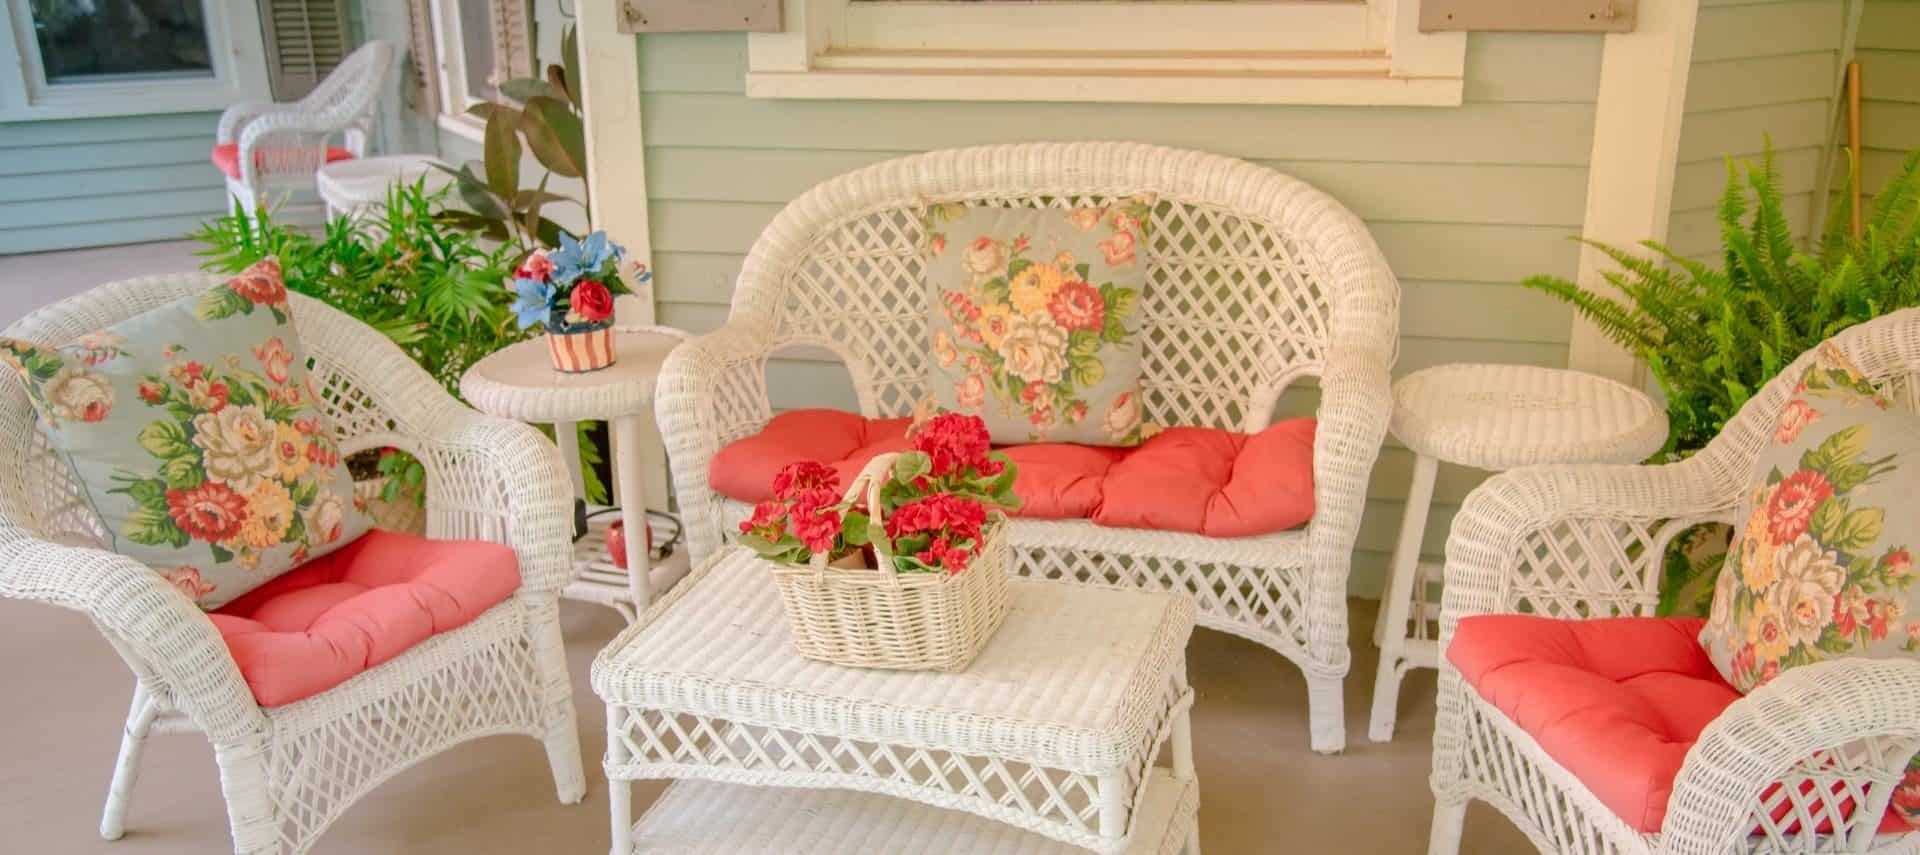 White wicker patio furniture with coral and floral cushions and pillows on front porch